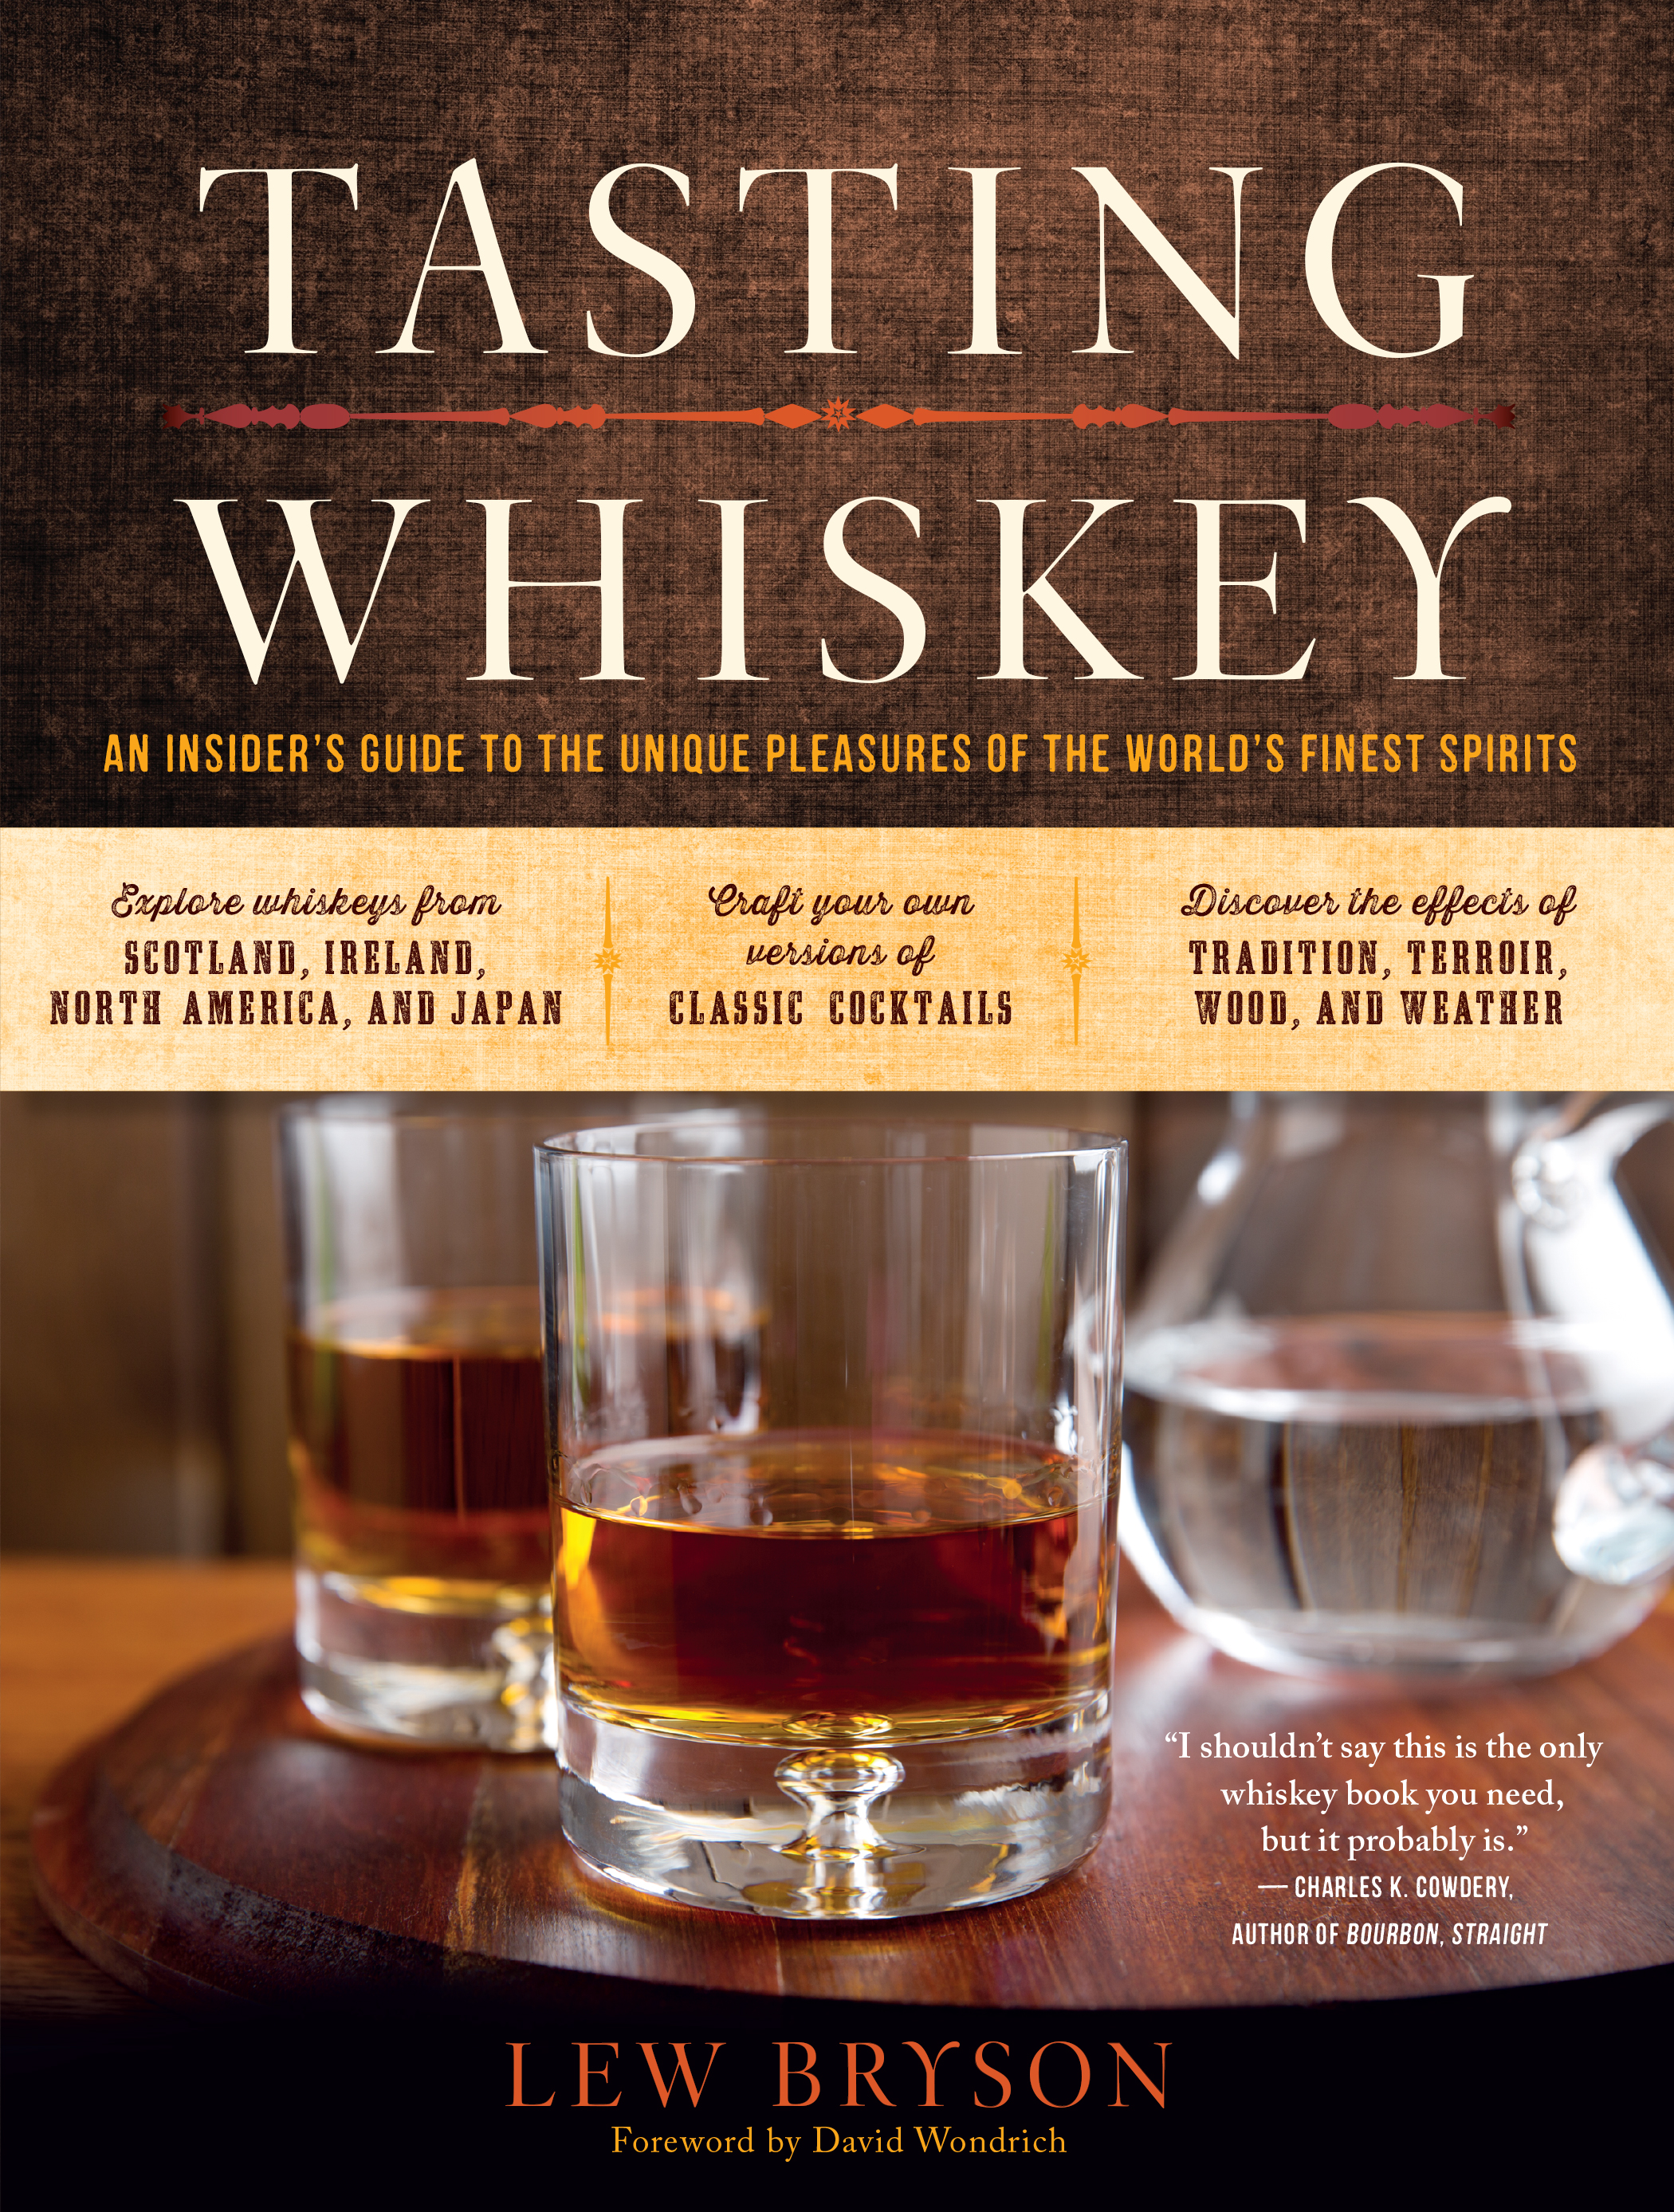 Tasting Whiskey An Insider's Guide to the Unique Pleasures of the World's Finest Spirits - Lew Bryson